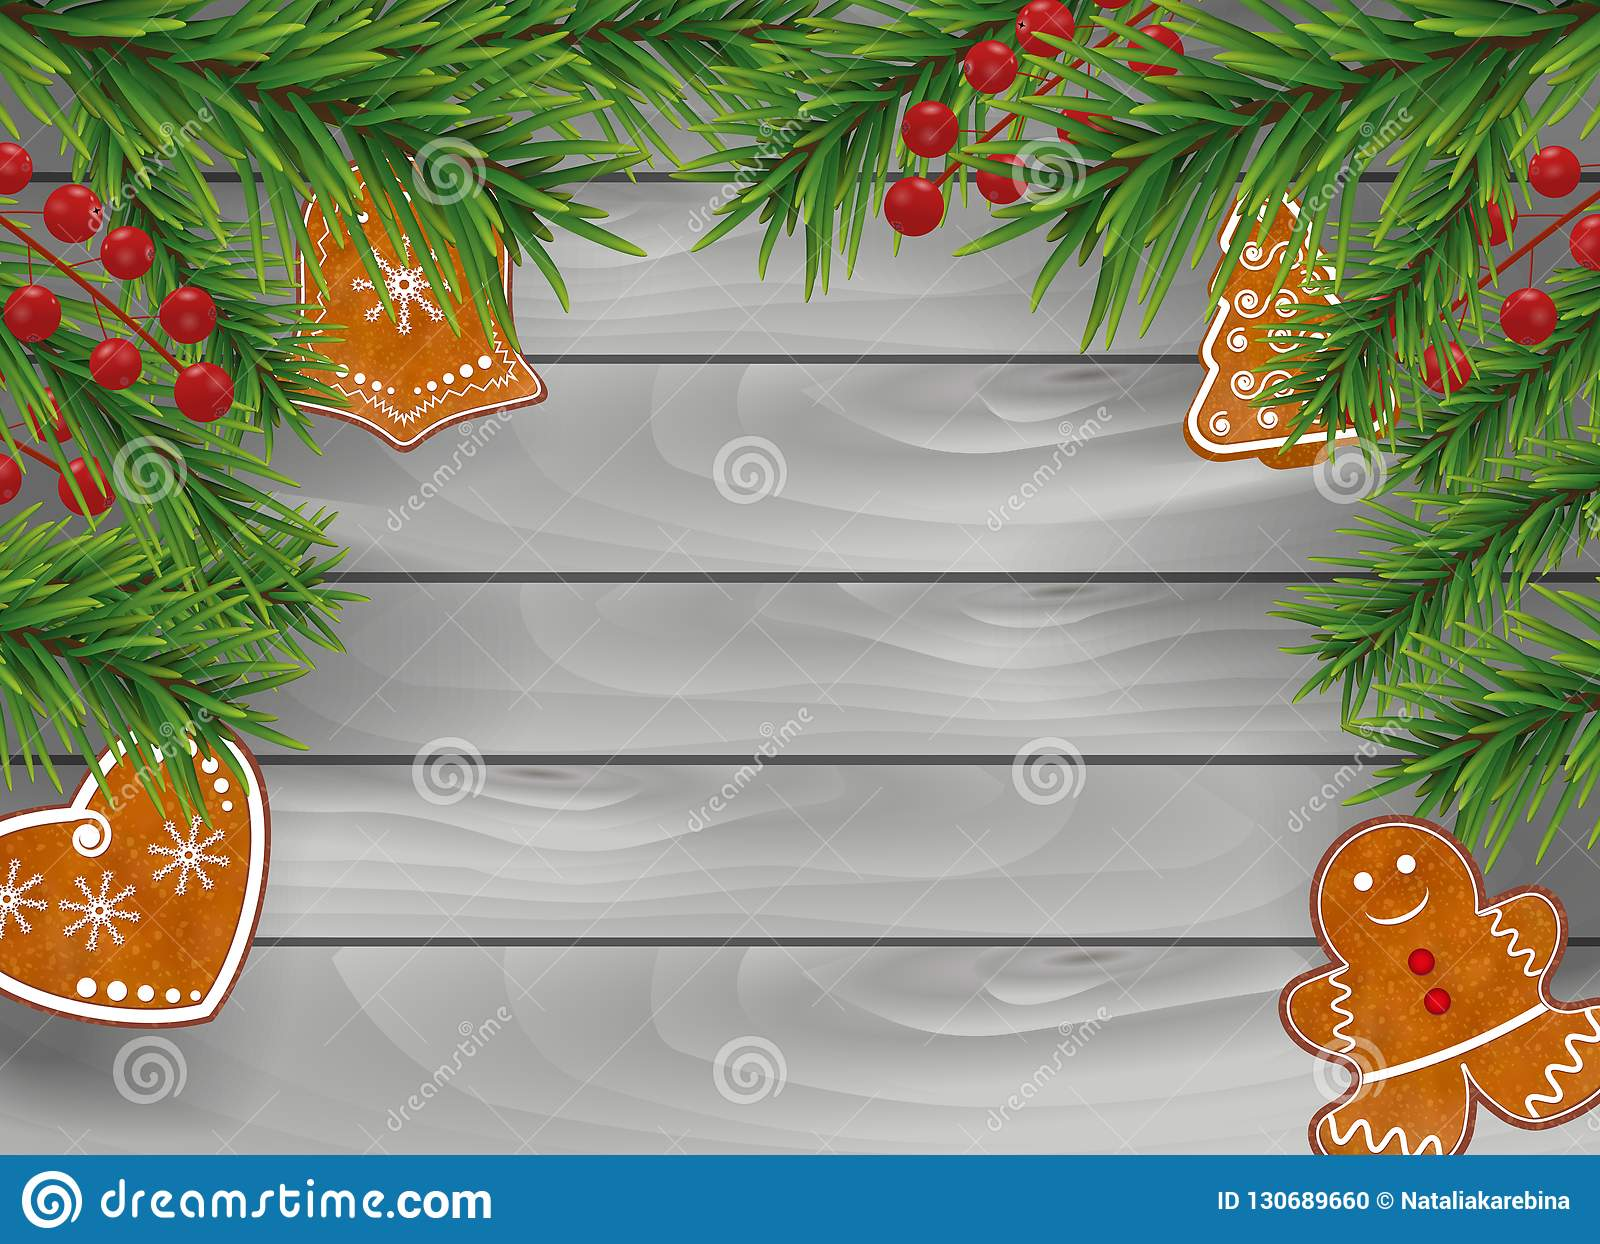 Christmas Wooden Background With Gingerbread Cookies Christmas Tree